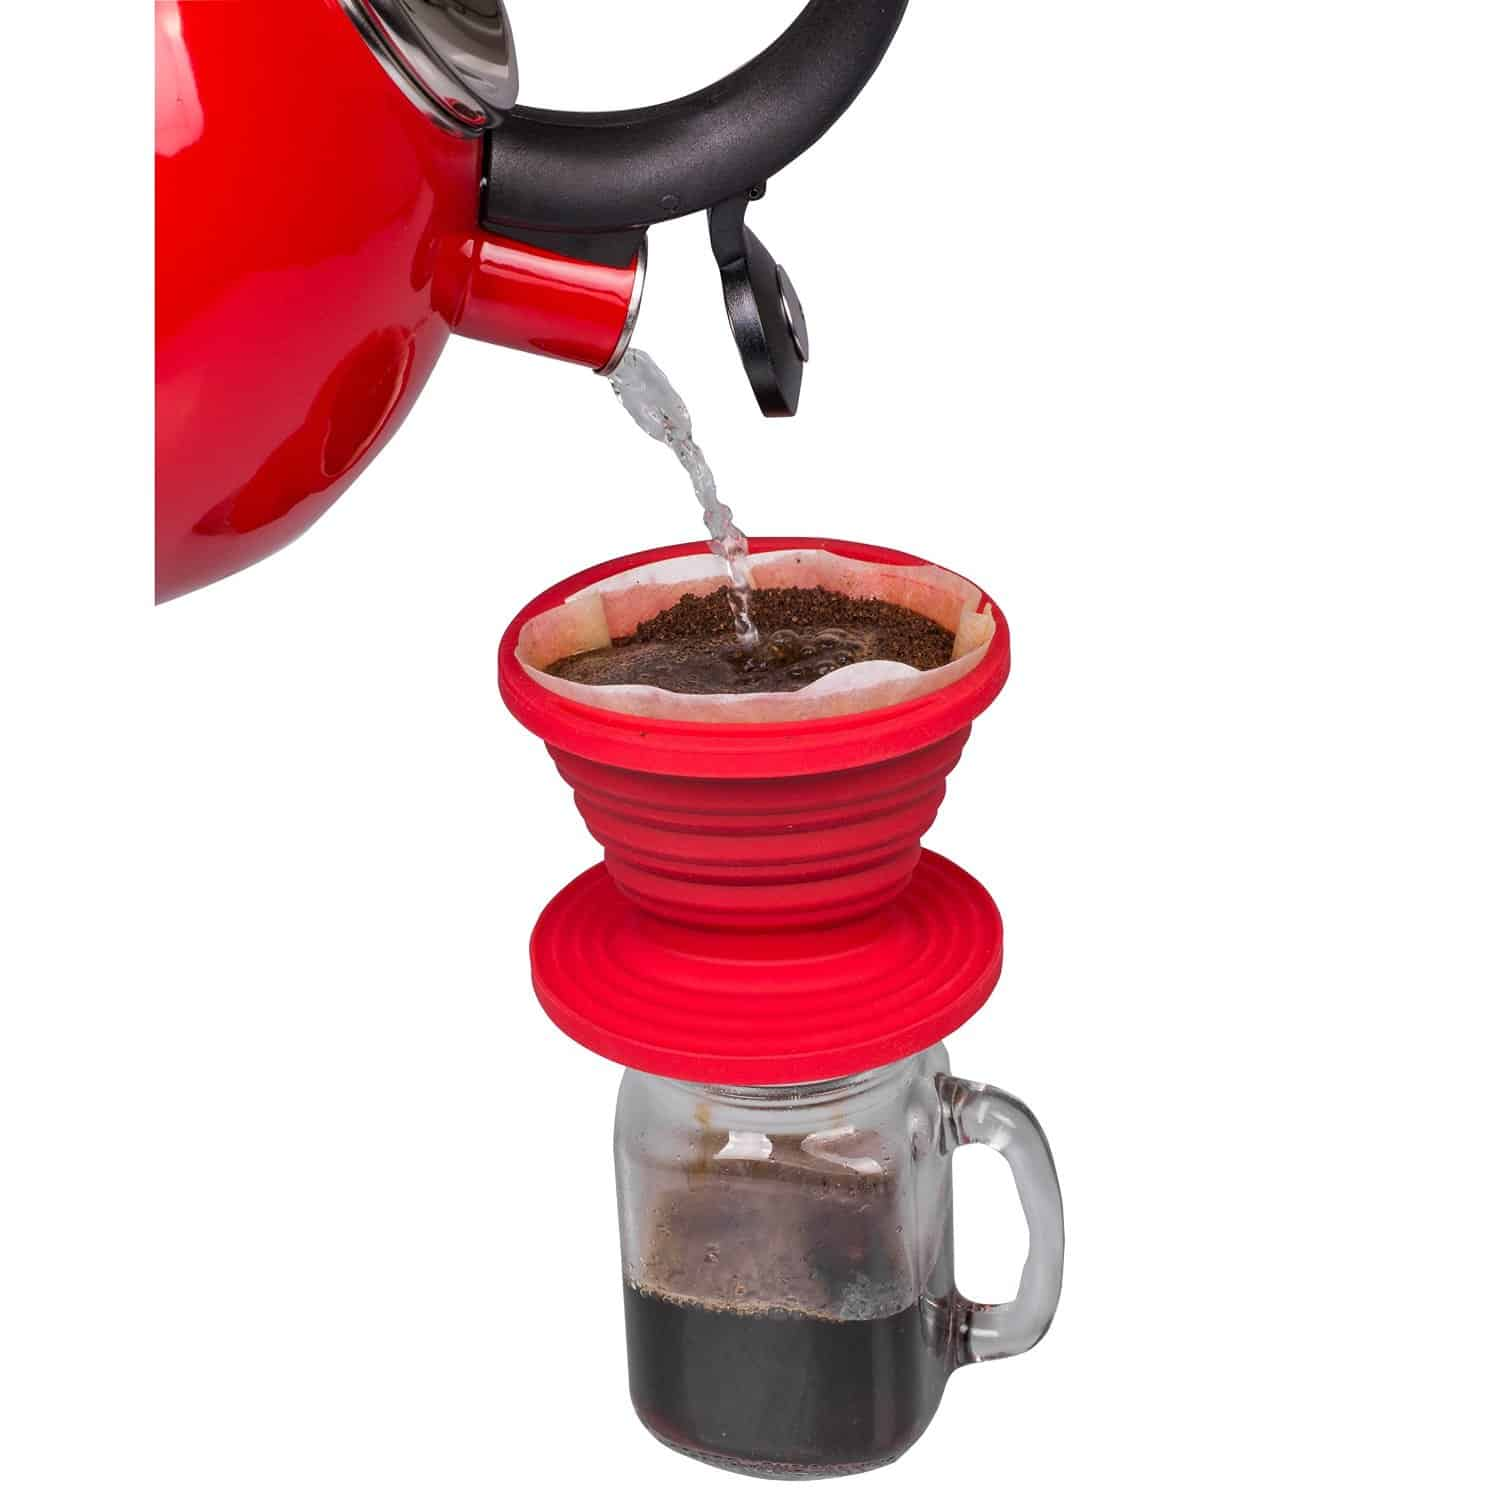 Best RV Coffee Maker [5 best coffee makers for your camper]